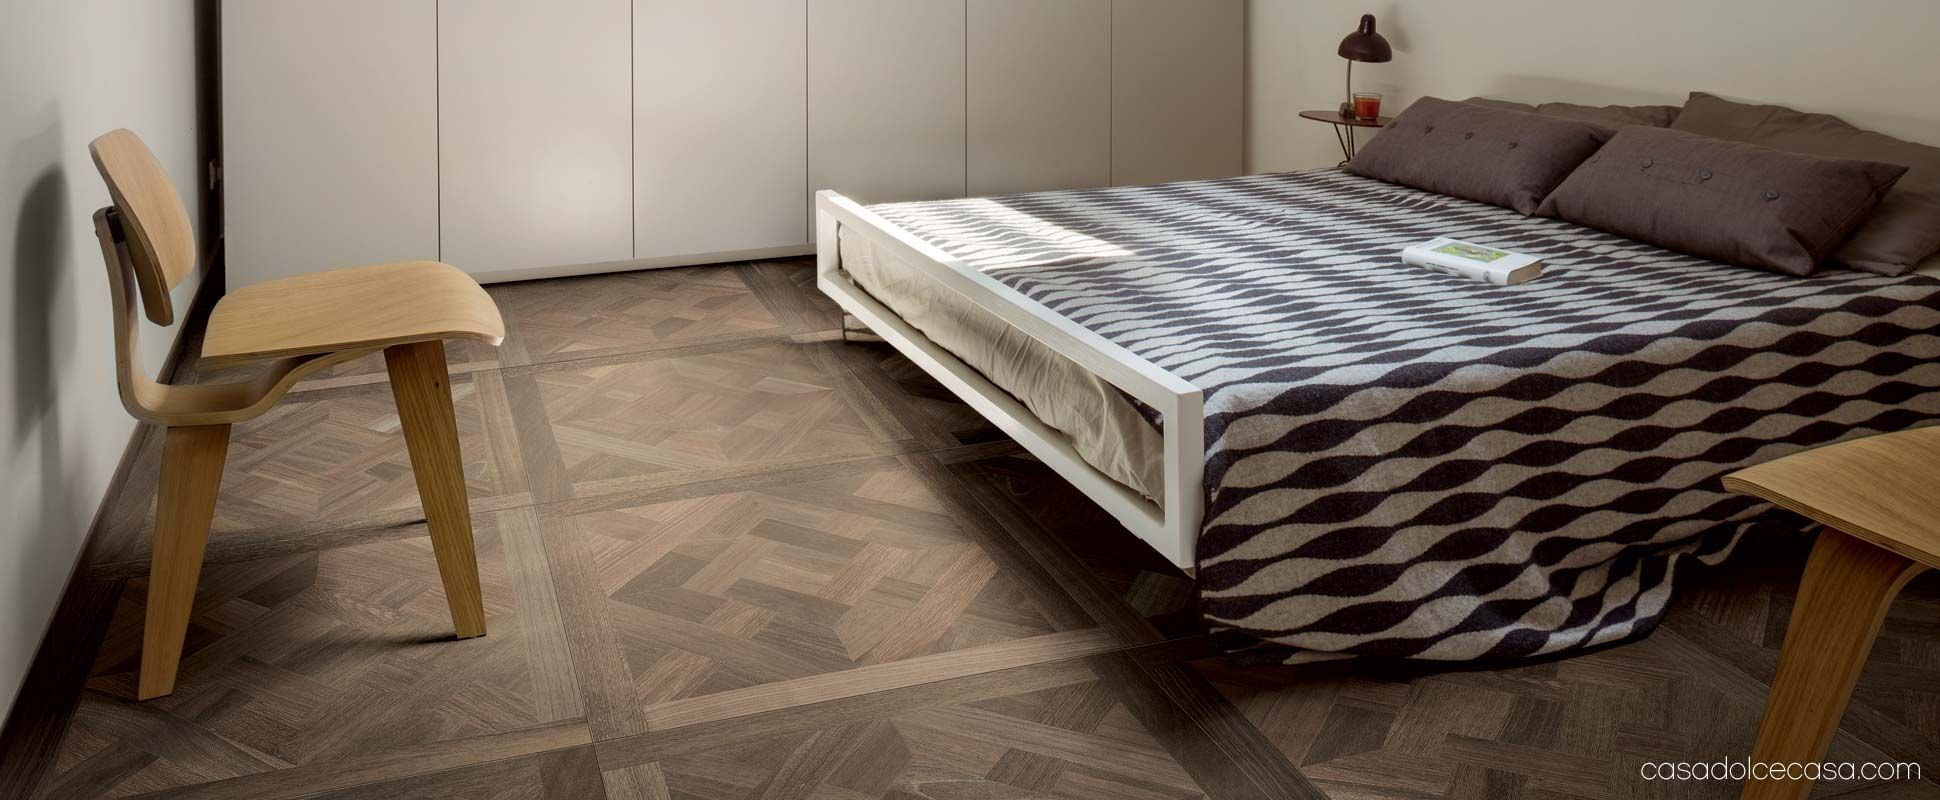 Feature Flooring For Master Bedroom Styling Ideas Pinterest Casa Dolce Casa Master